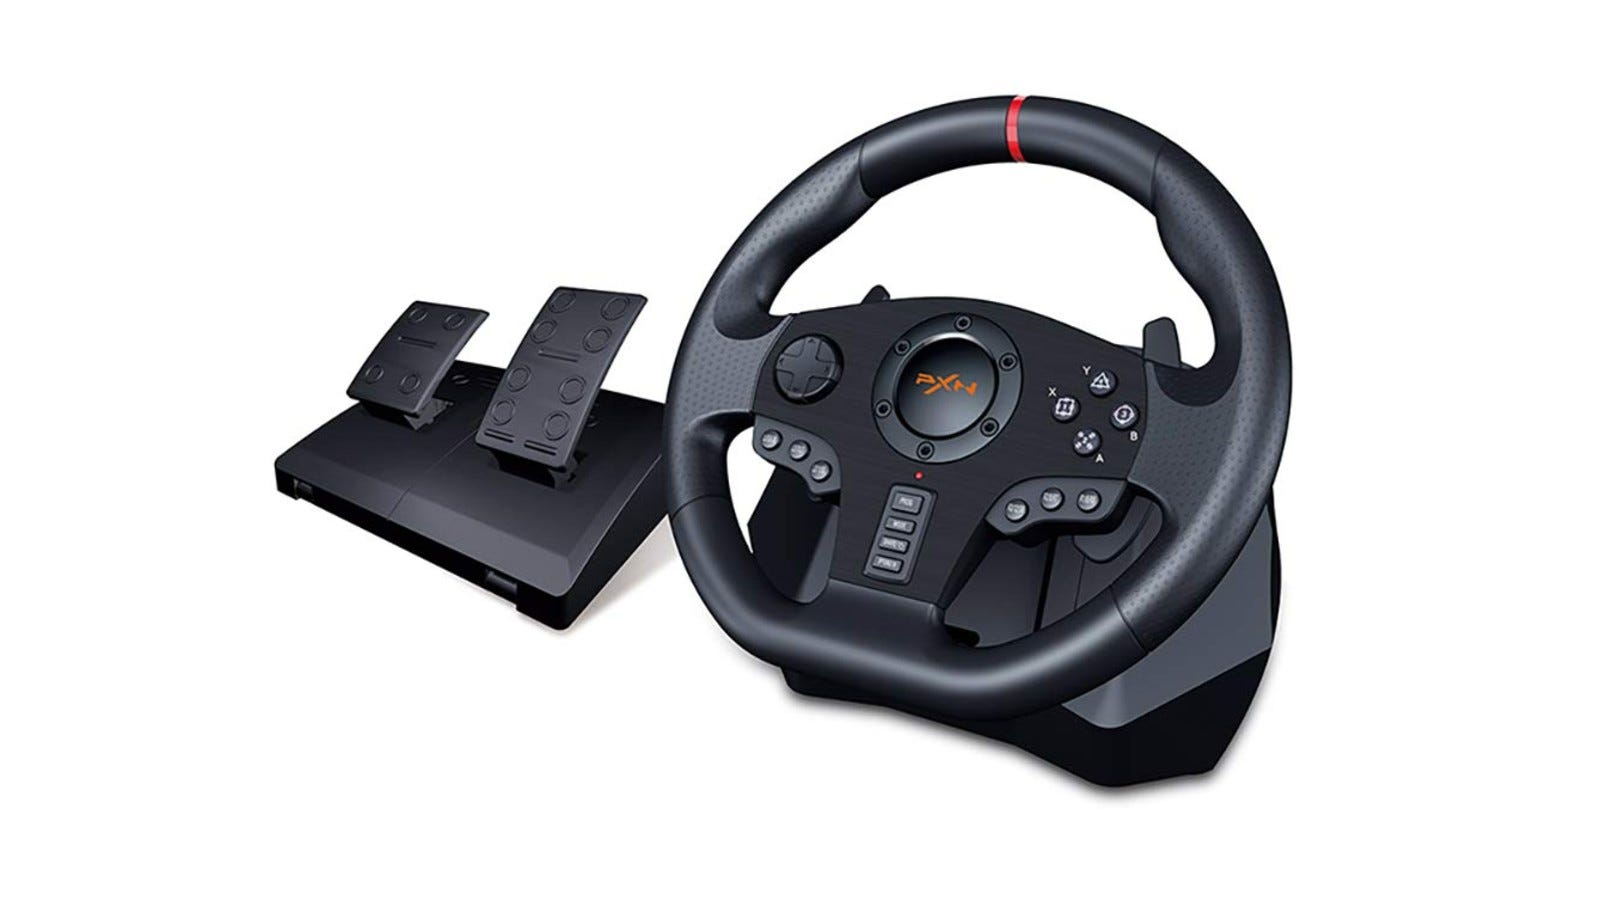 This particular racing wheel is compatible with Xbox and PlayStation consoles